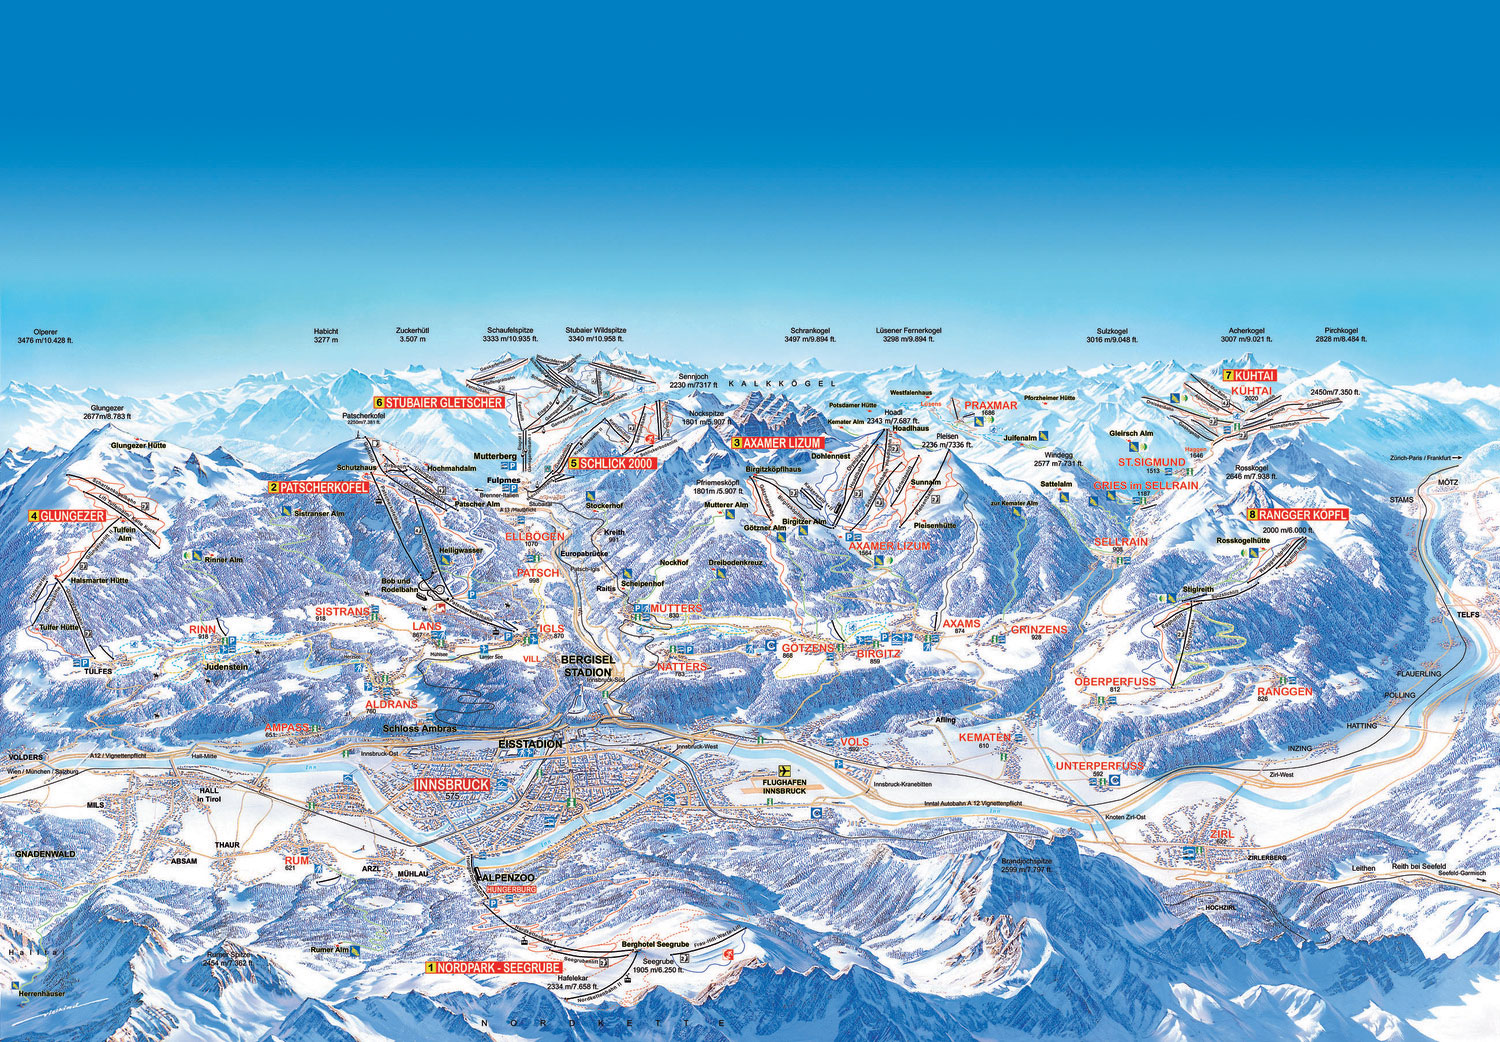 innsbruck karta Innsbruck Piste Map – Free downloadable piste maps. innsbruck karta